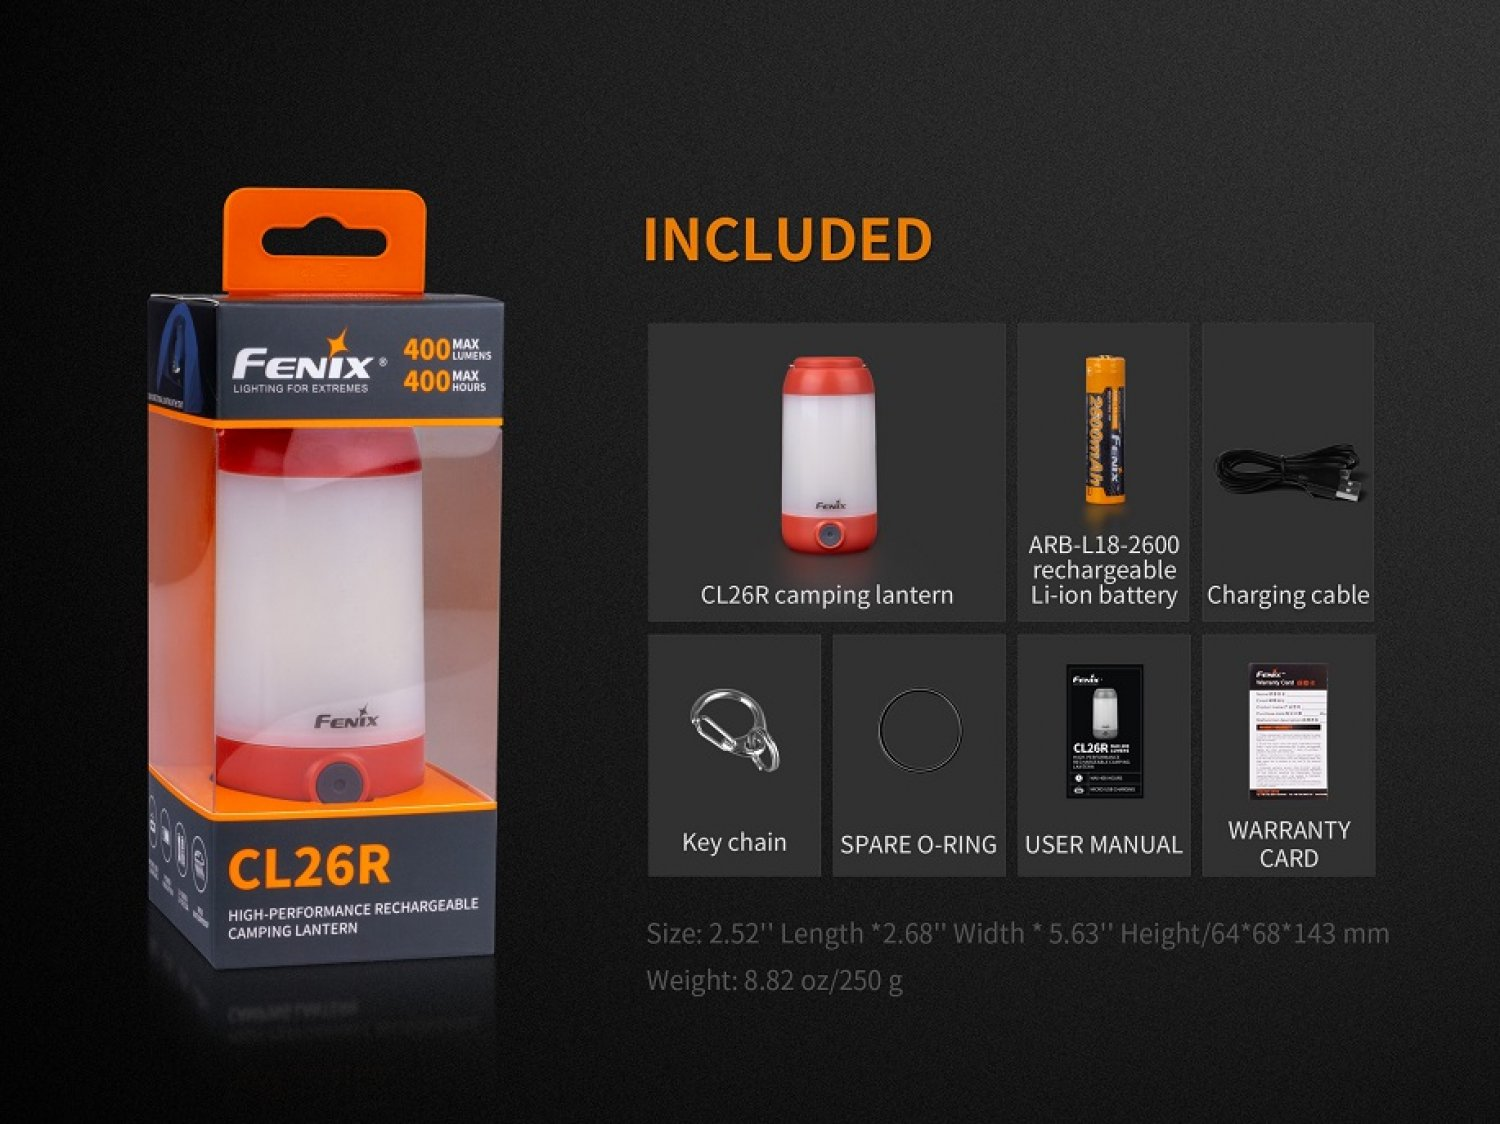 Fenix CL26R LED Campinglampe